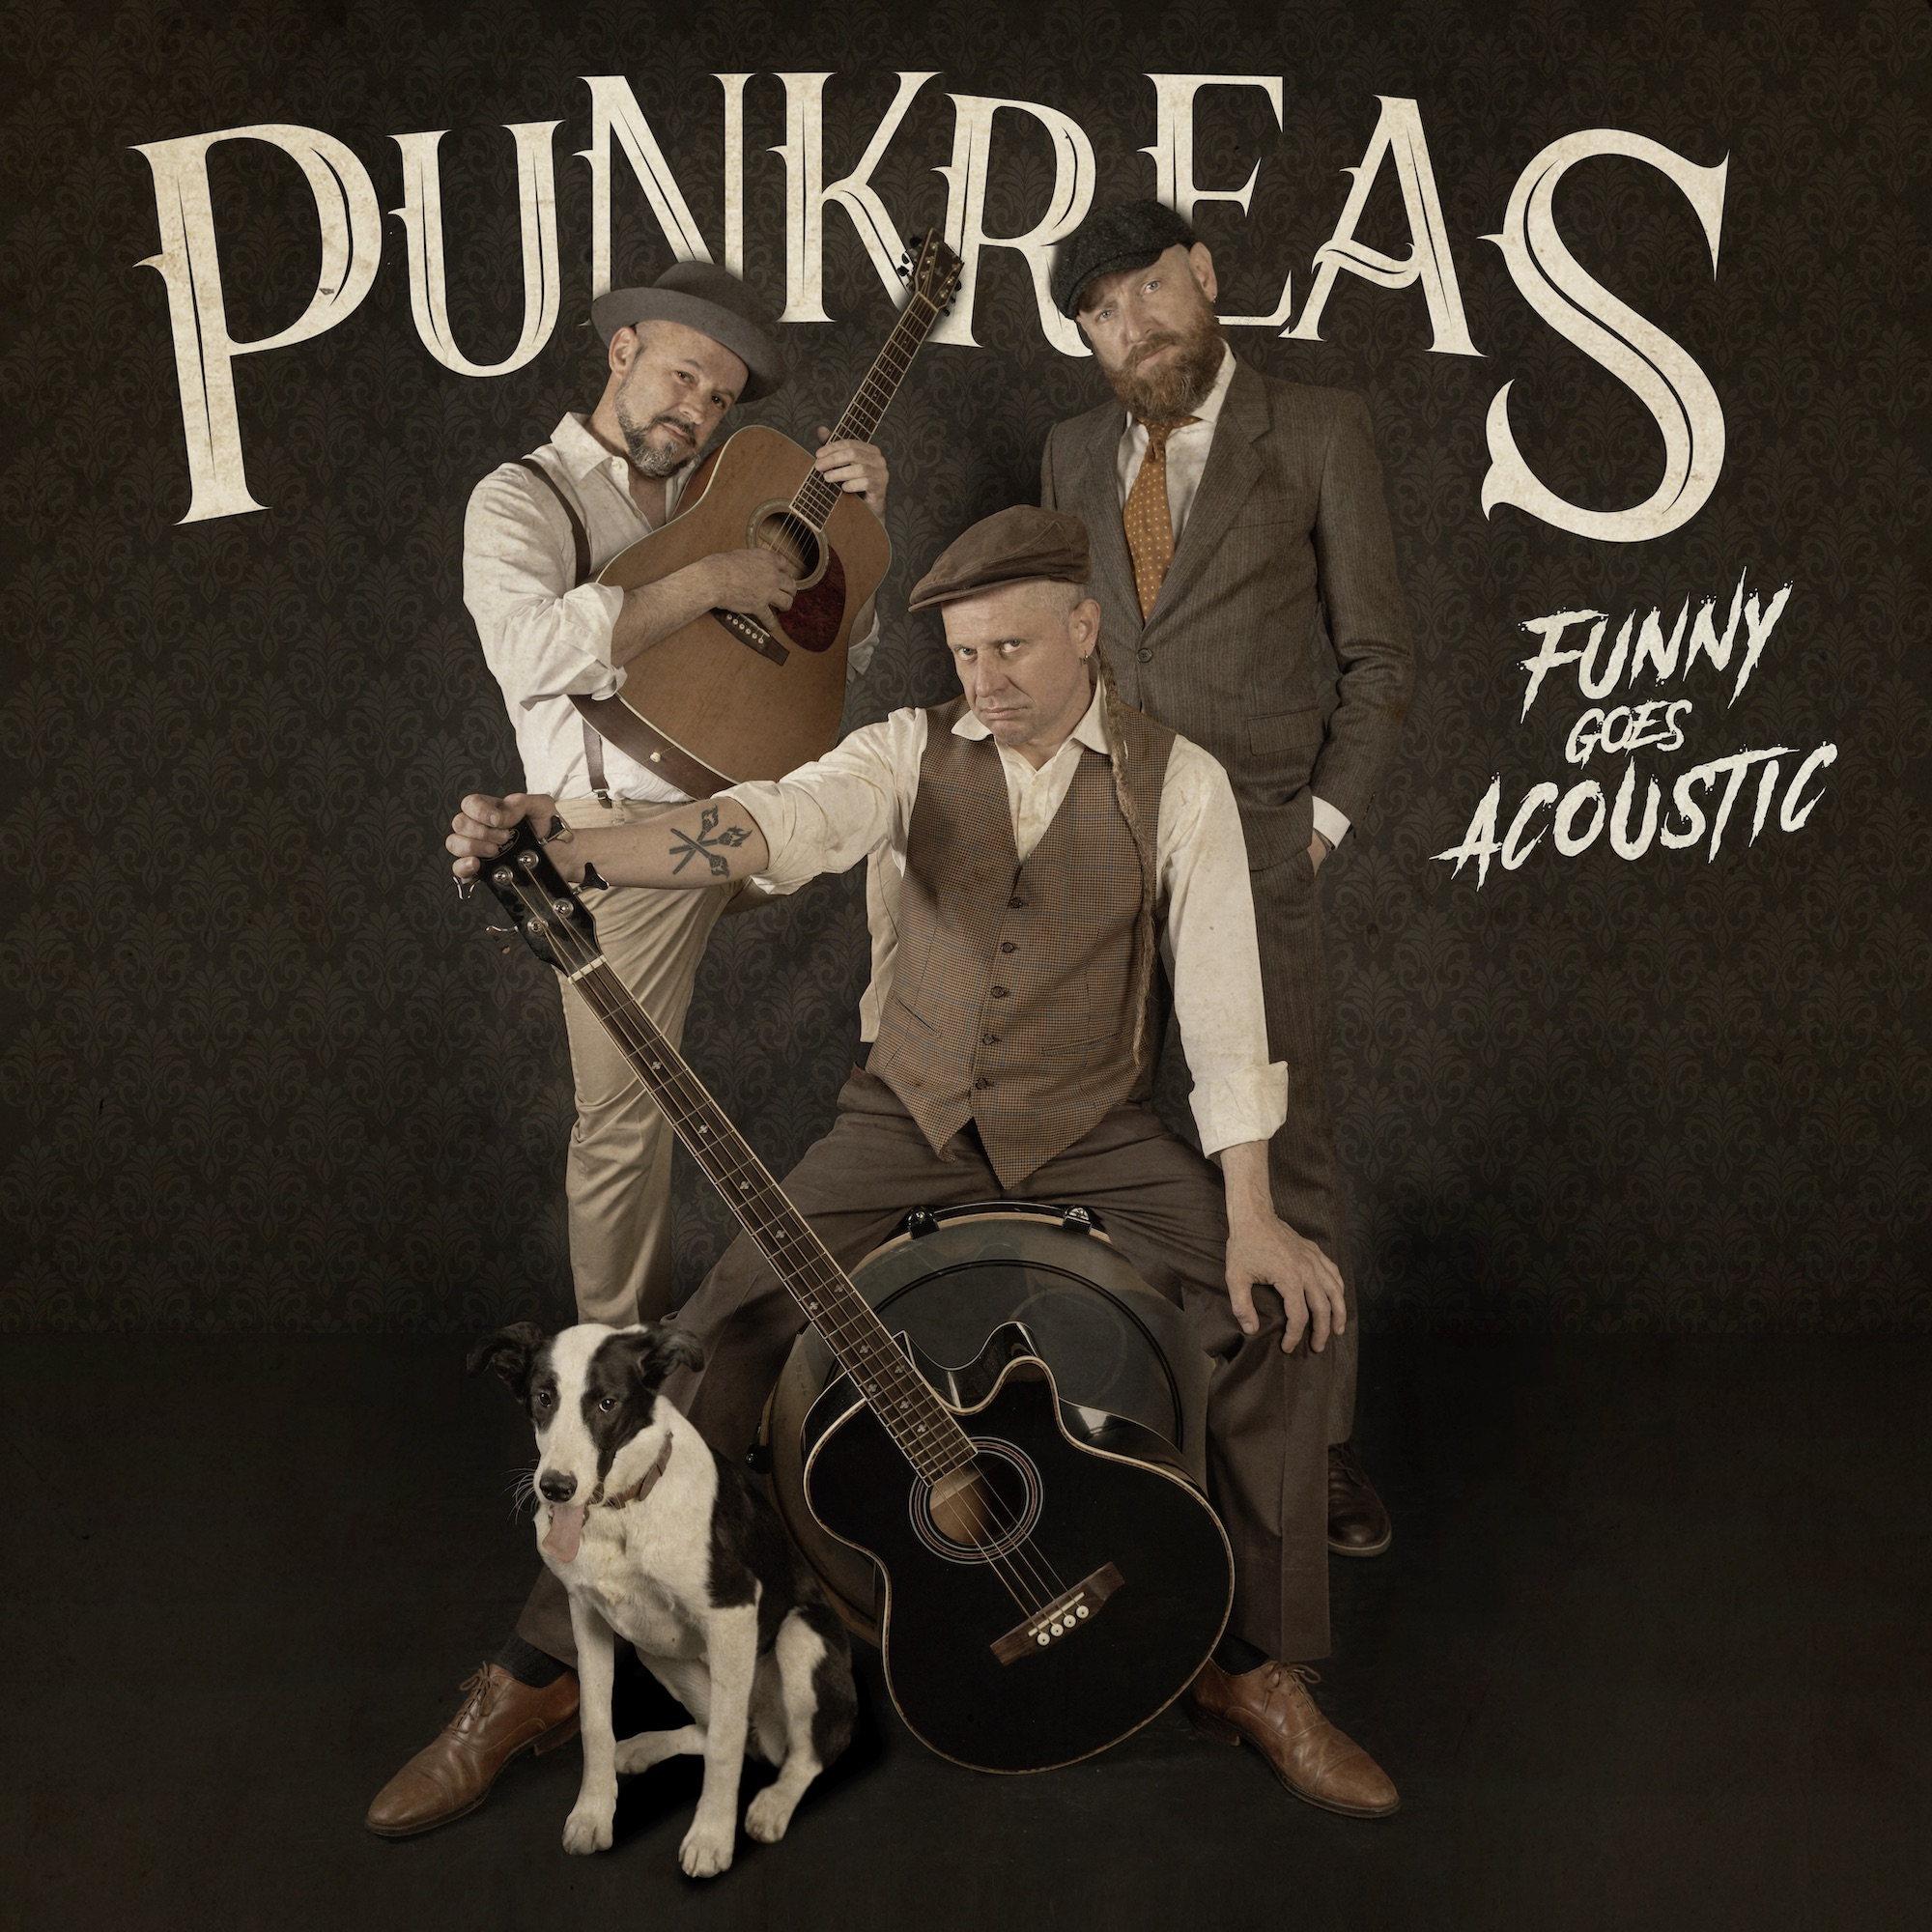 PUNKREAS Cover ALbum Funny Goes Acoustic